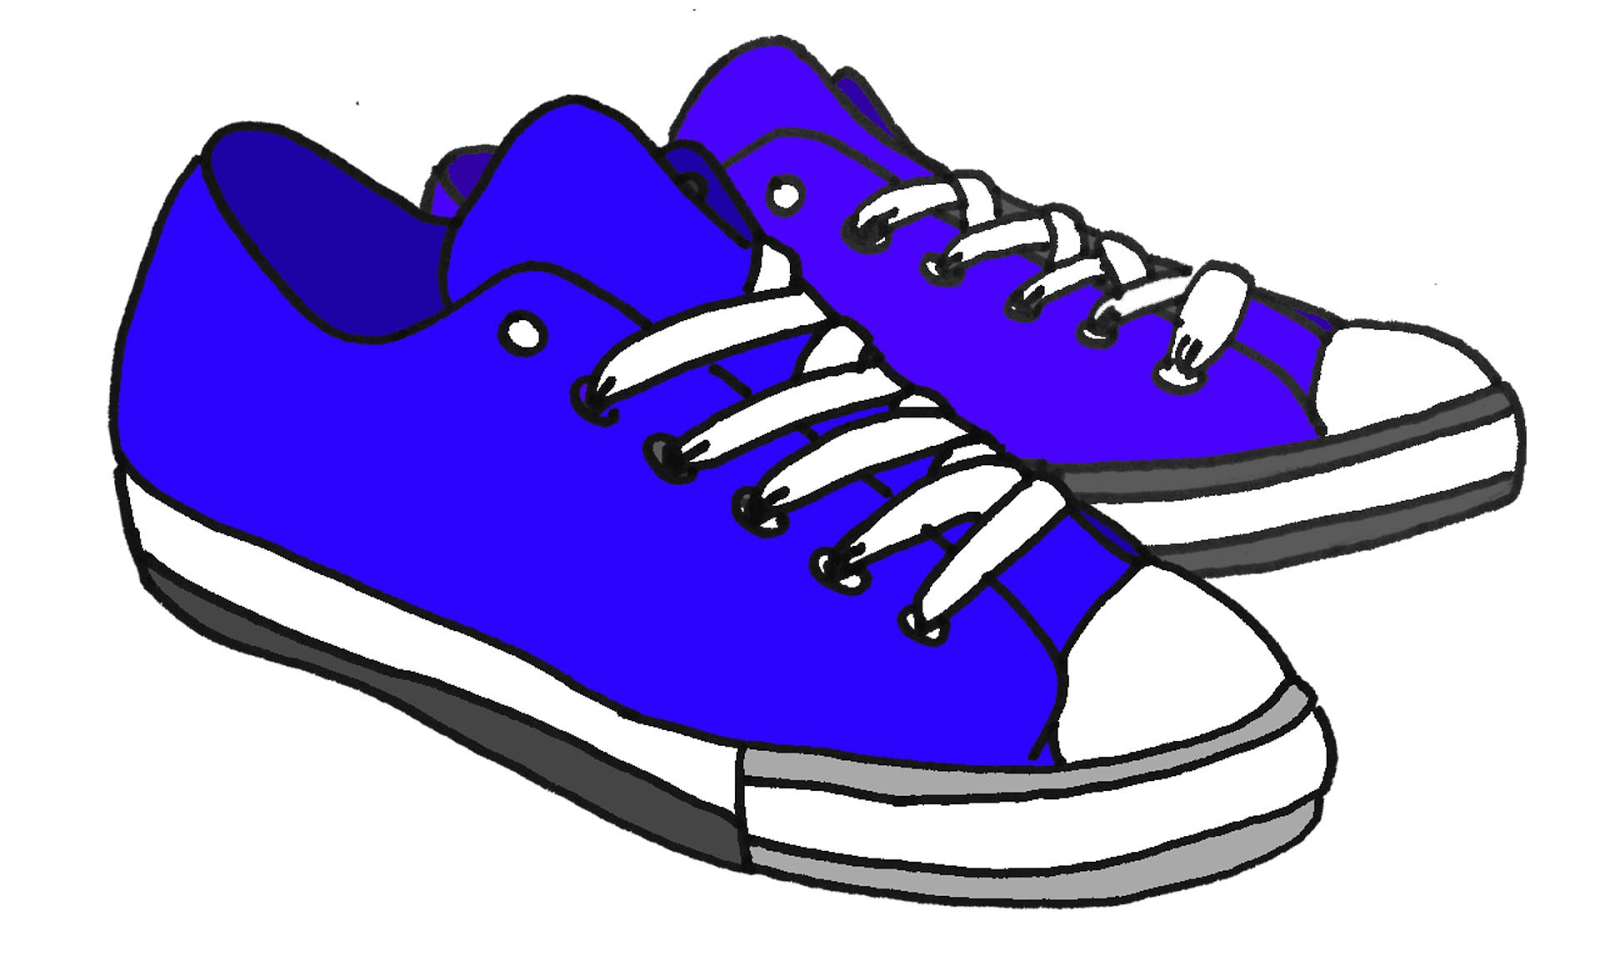 Shoes Clipart & Shoes Clip Art Images.